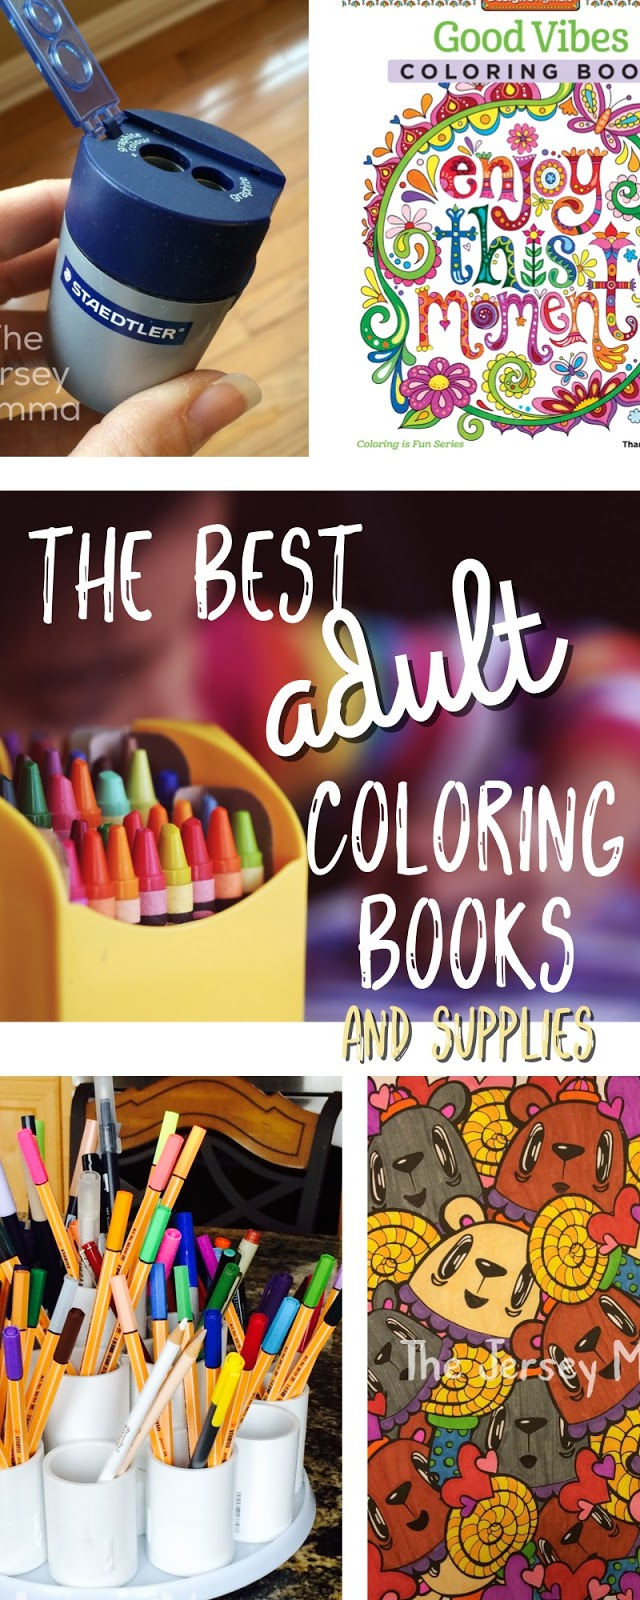 the best adult coloring books and supplies - part 2 | the